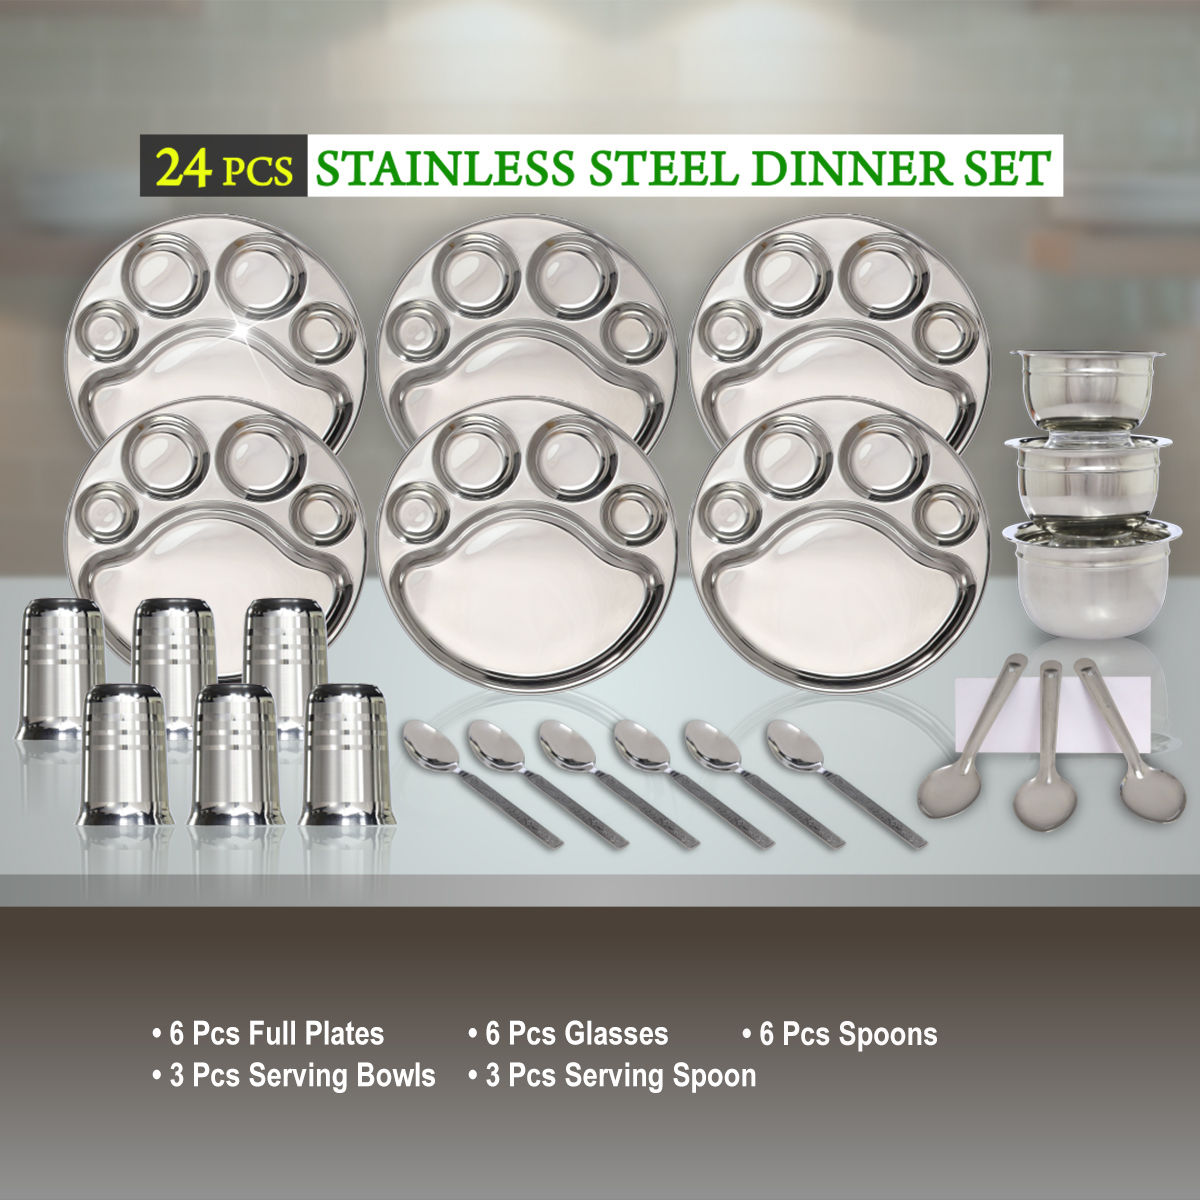 Buy 24 Pcs Stainless Steel Dinner Set Online At Best Price In India